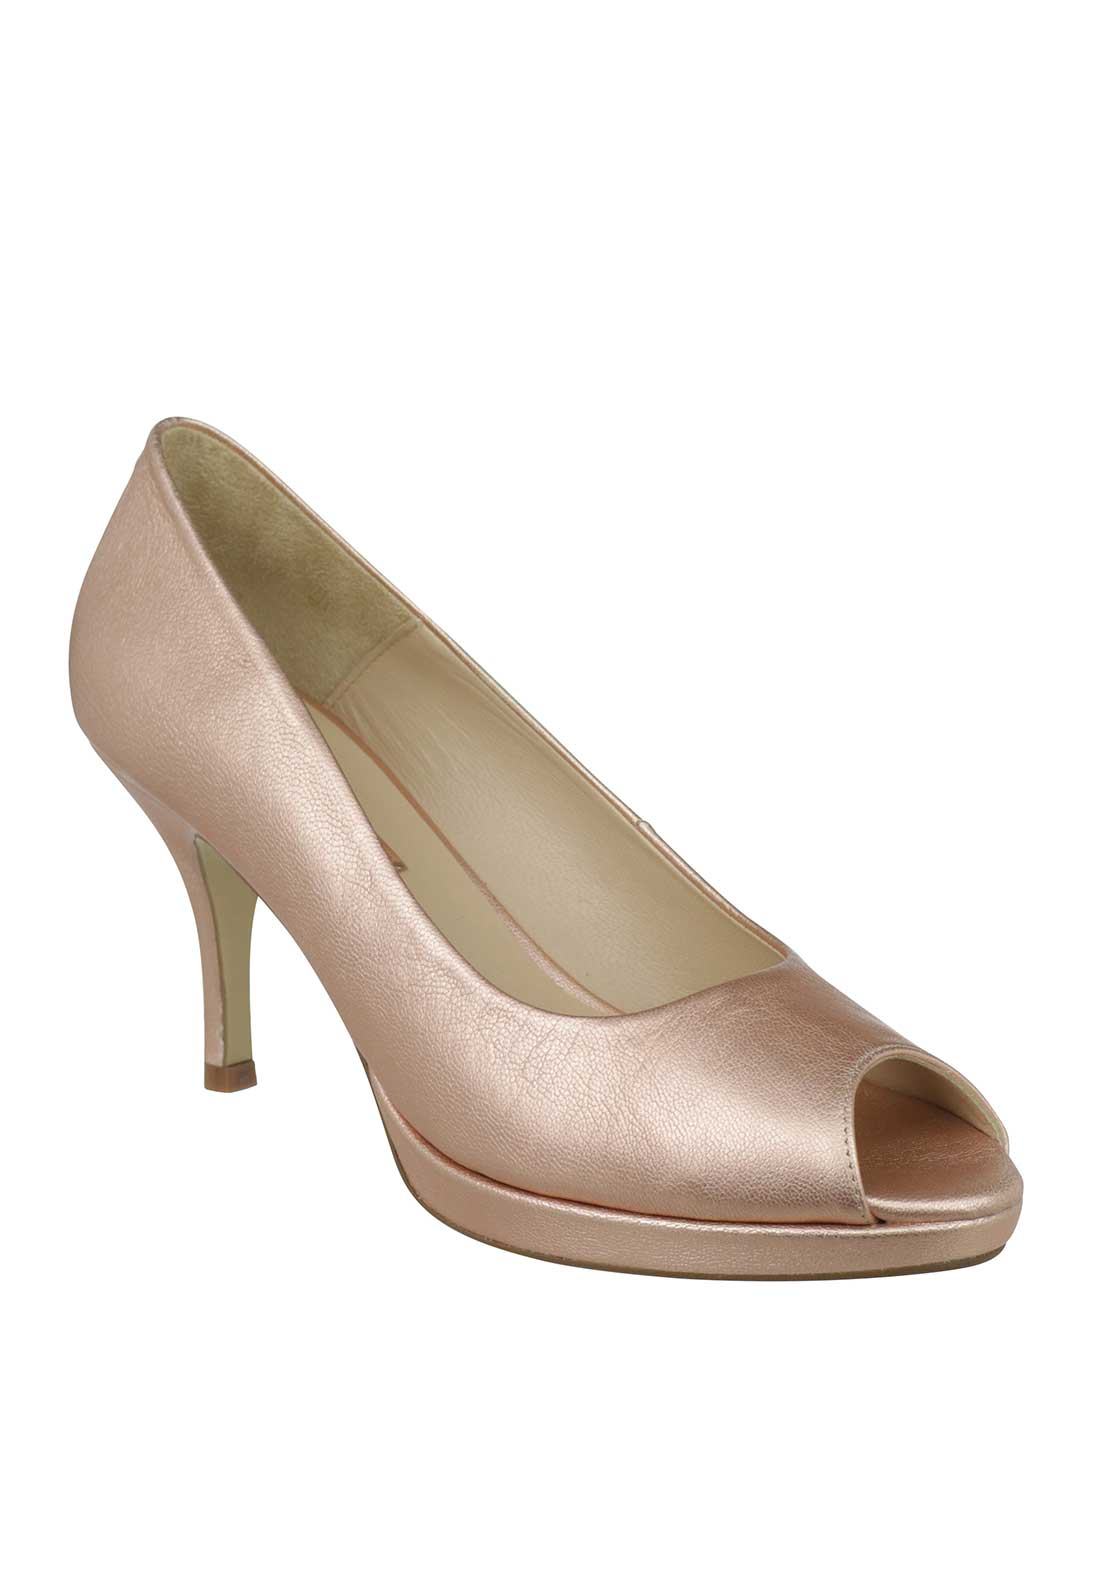 Marian Leather Peep Toe Heeled Shoes, Pink